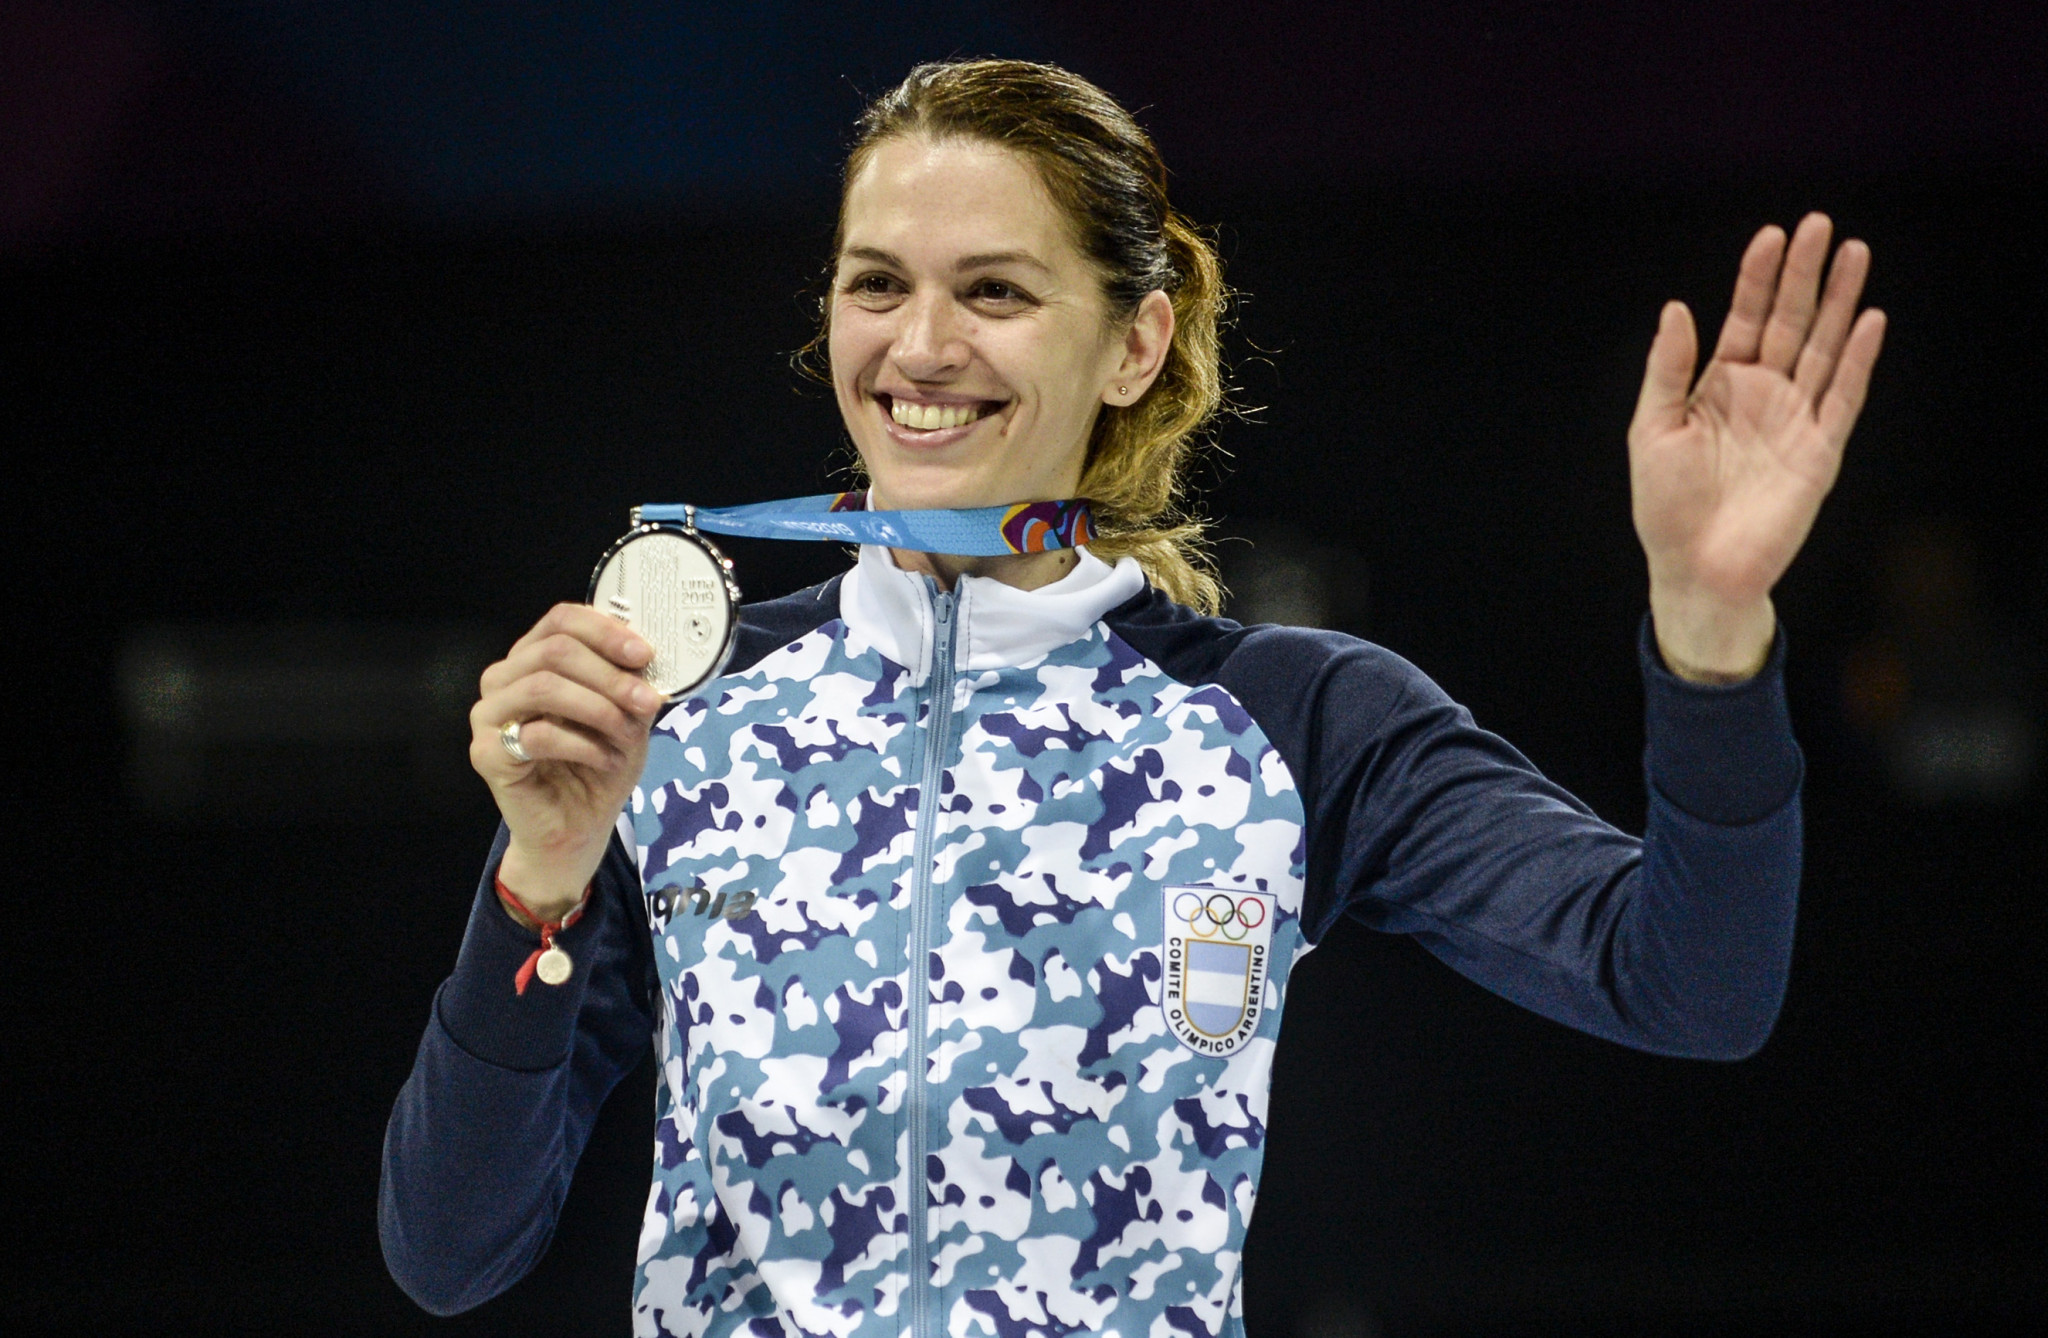 Argentina's Maria Belen Perez Maurice, a Lima 2019 Pan American Games runner-up, has qualified for the Tokyo 2020 Olympics  ©Getty Images